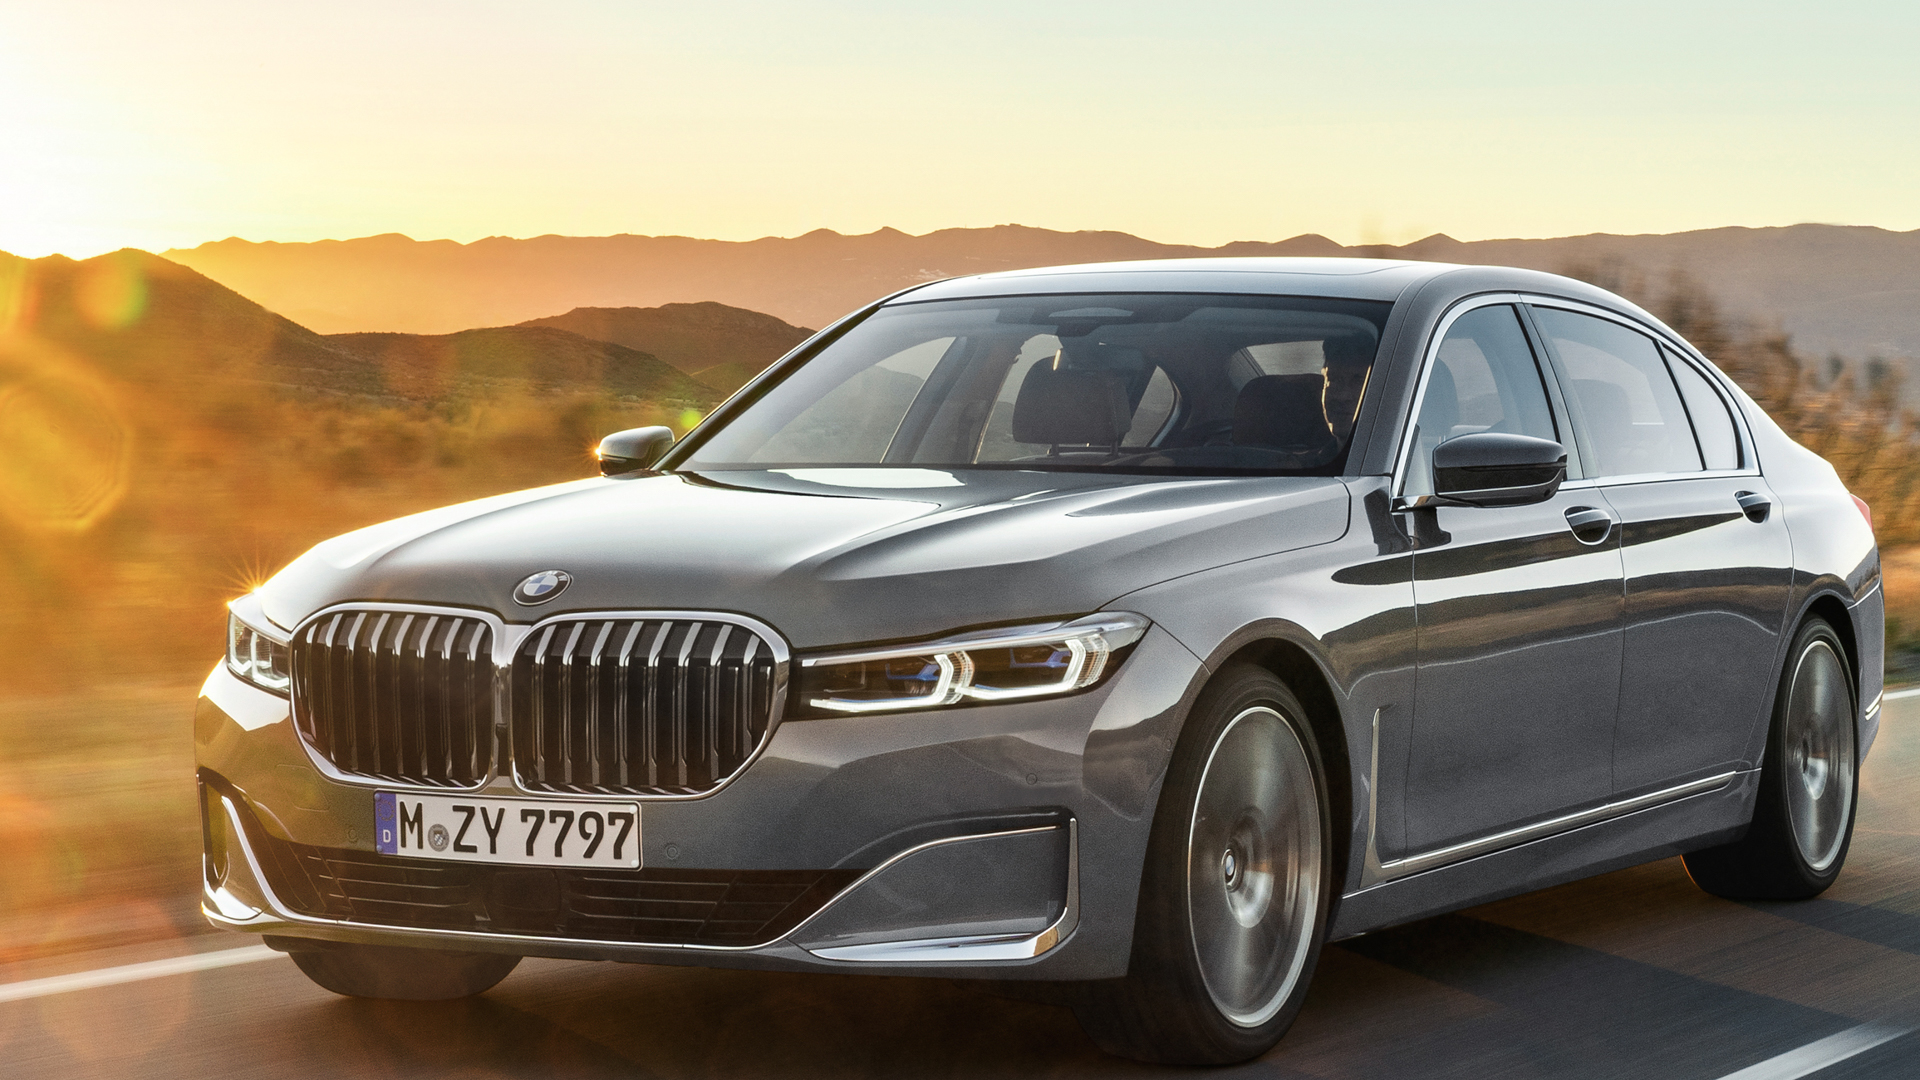 Photo Comparison Before And After Bmw 7 Series Lci